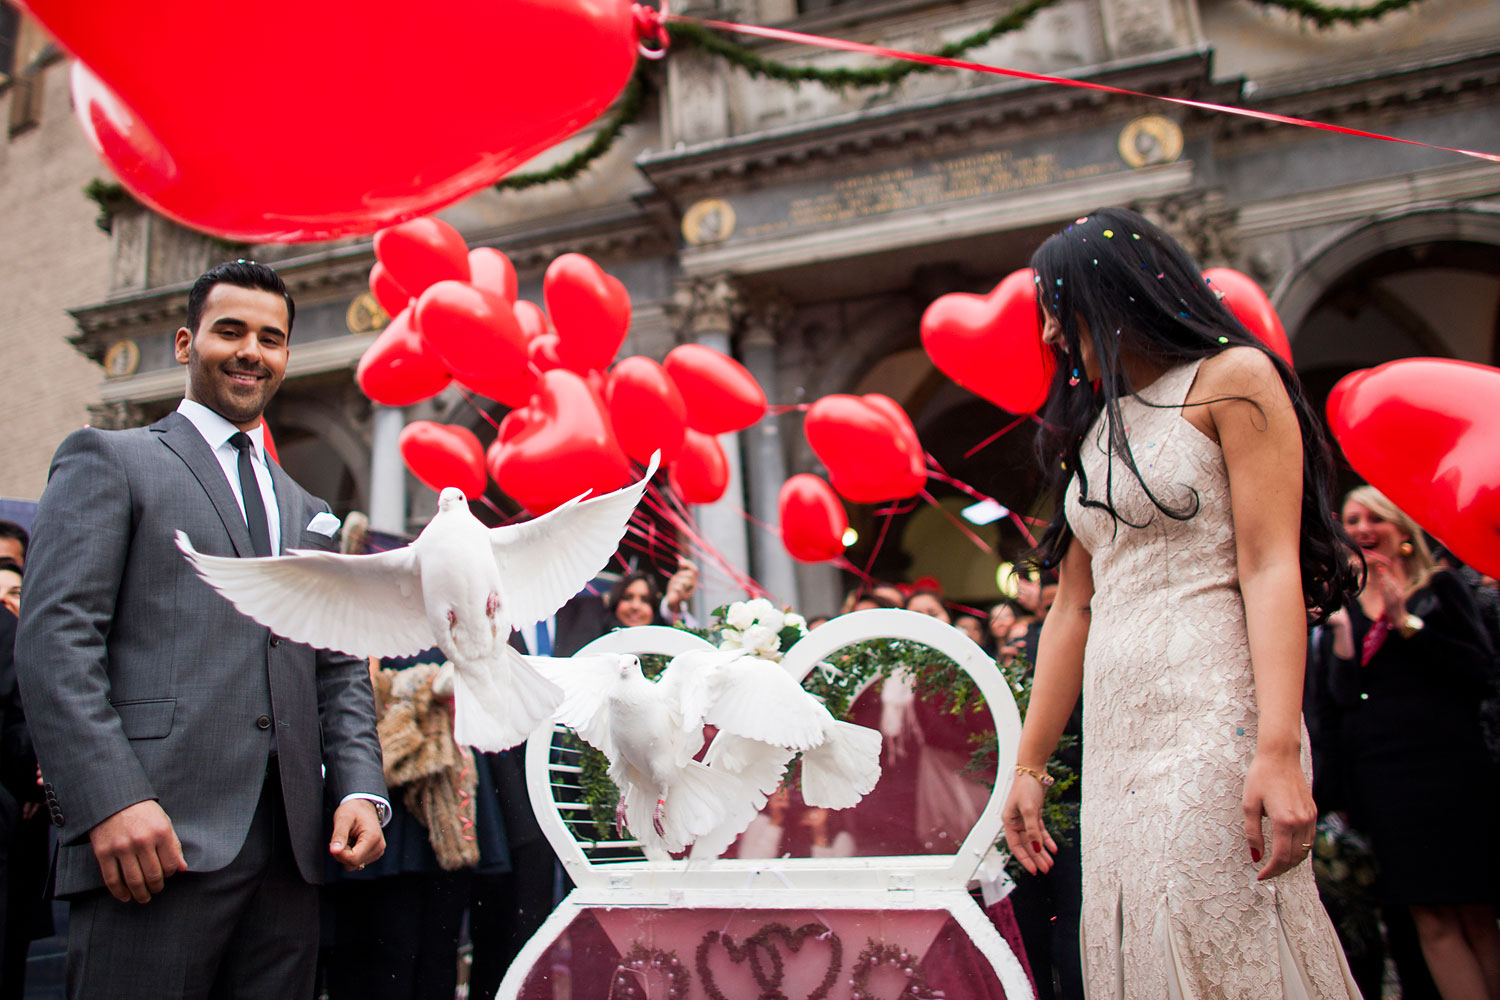 image: Oezguer and Baris celebrate their wedding in Cologne, Germany.